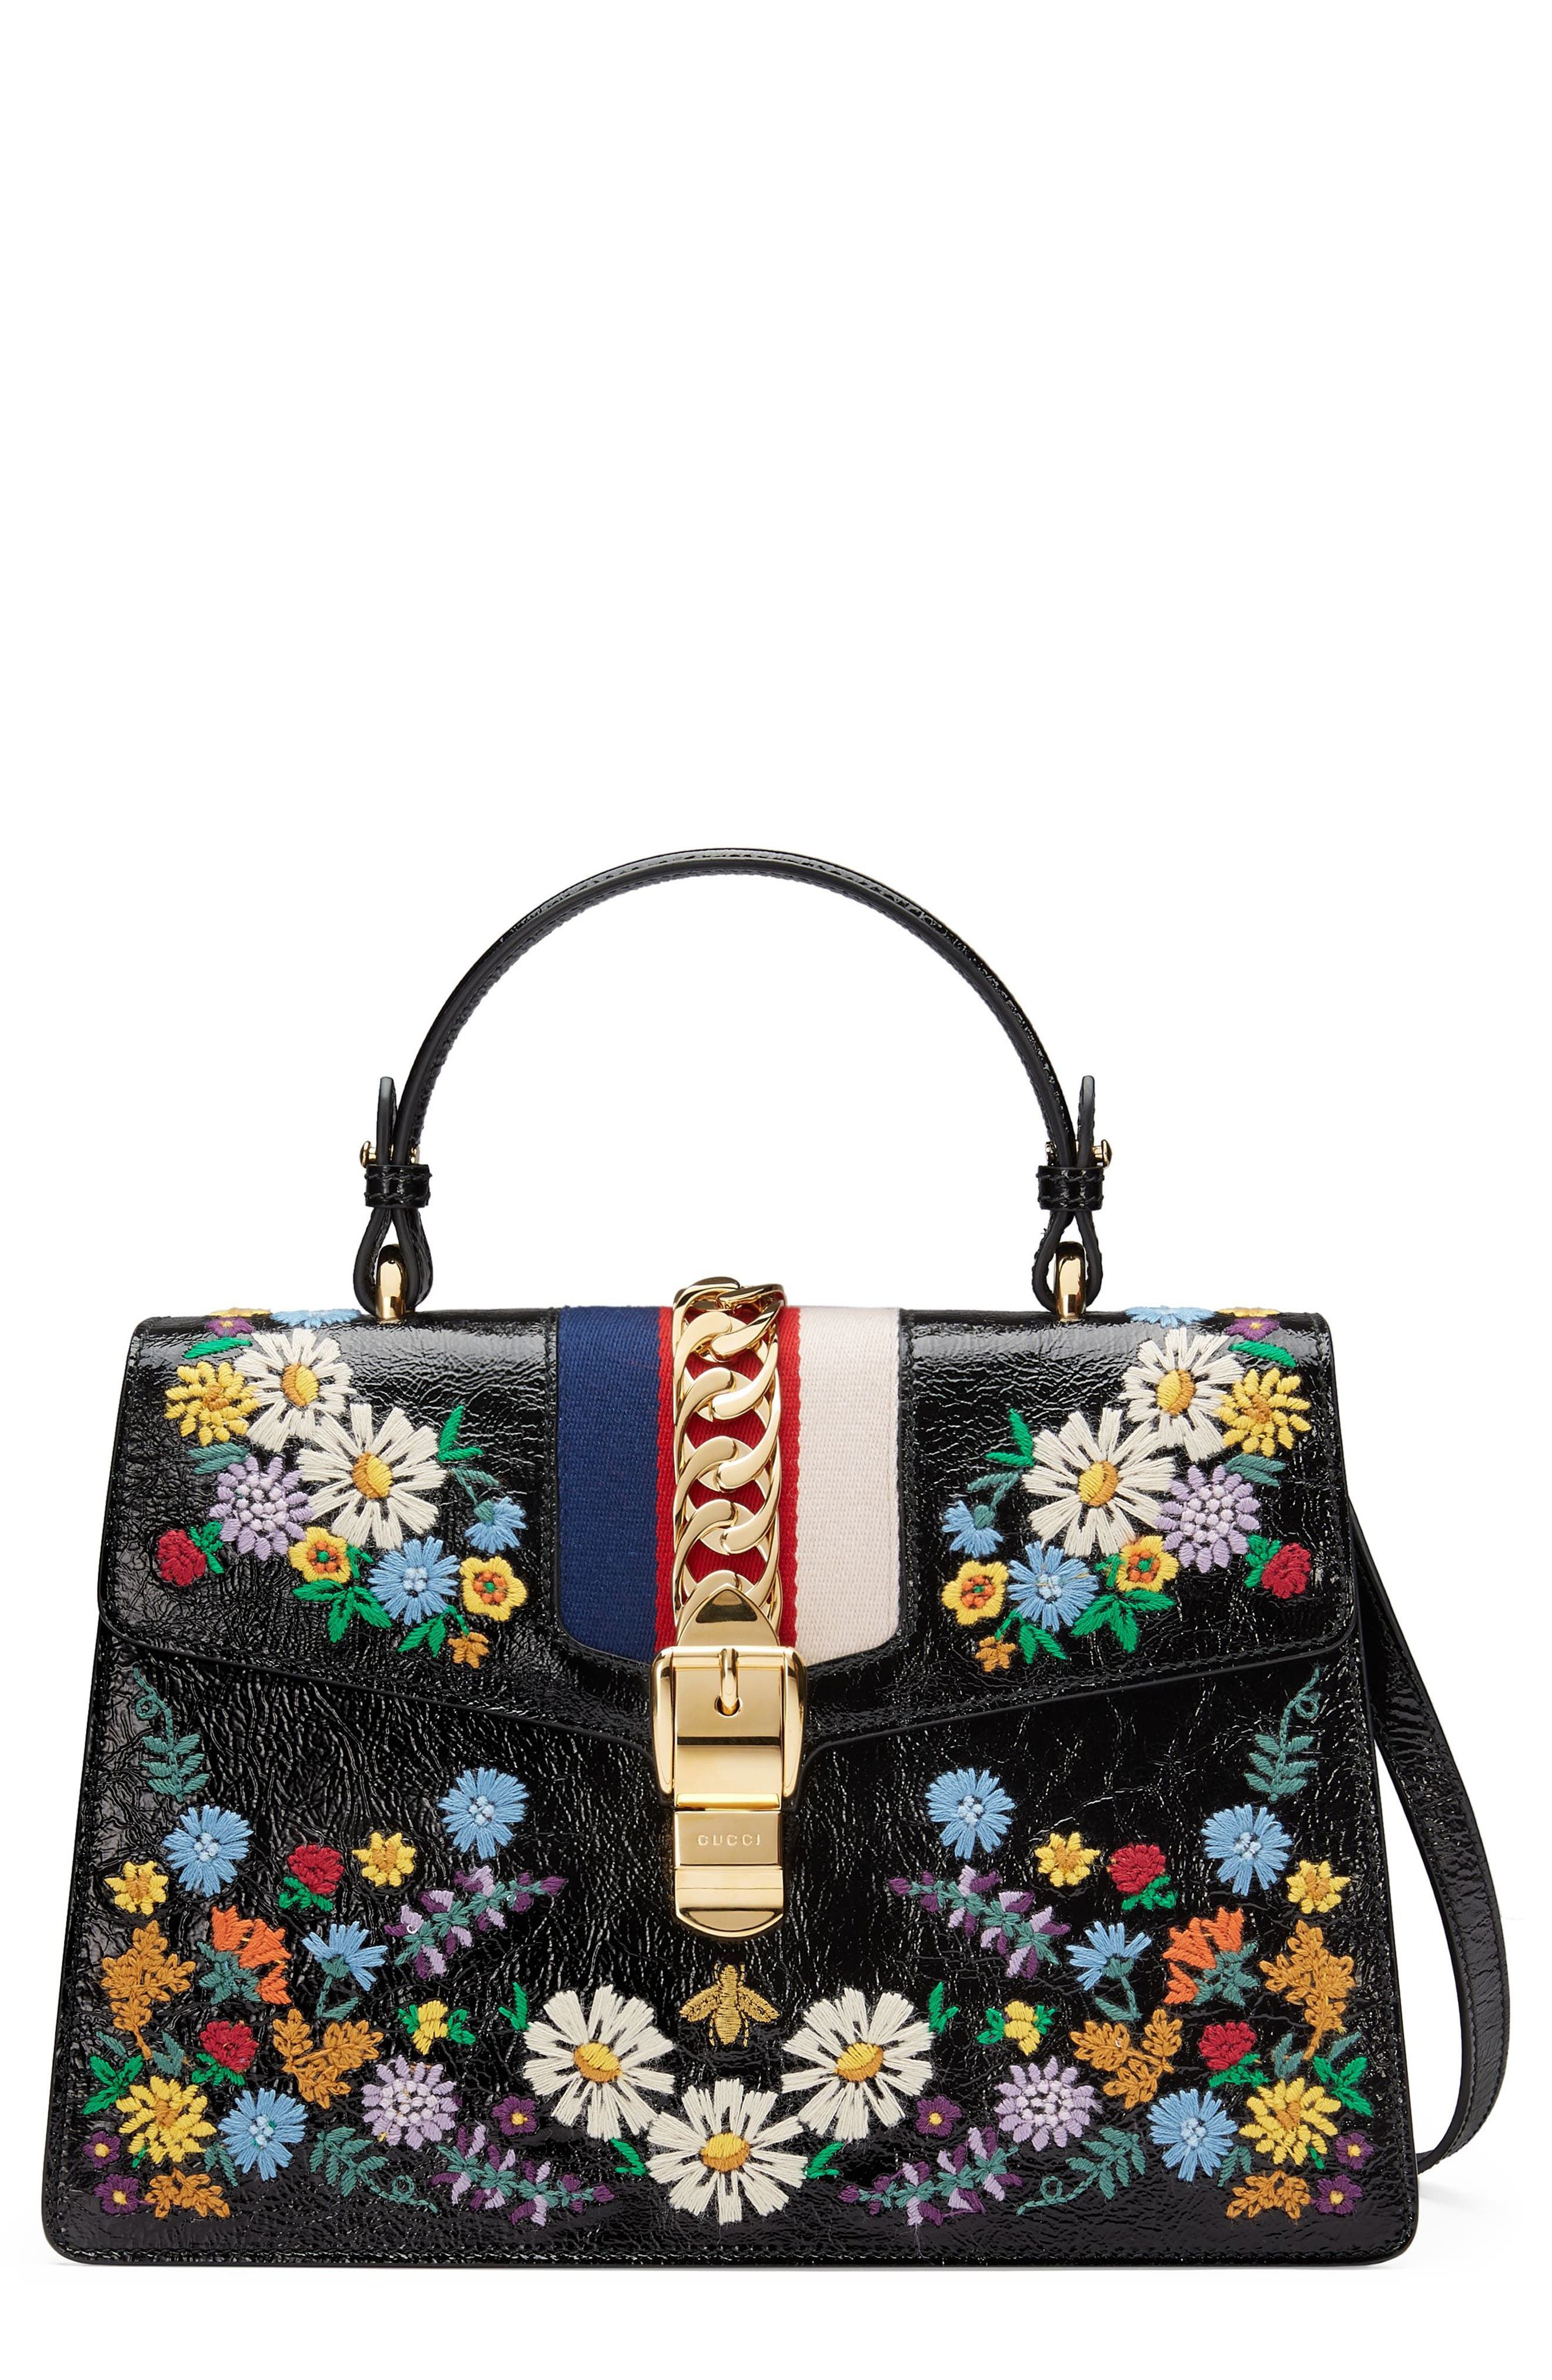 Medium Sylvie Floral Embroidered Top Handle Leather Shoulder Bag,                             Main thumbnail 1, color,                             Nero Multi